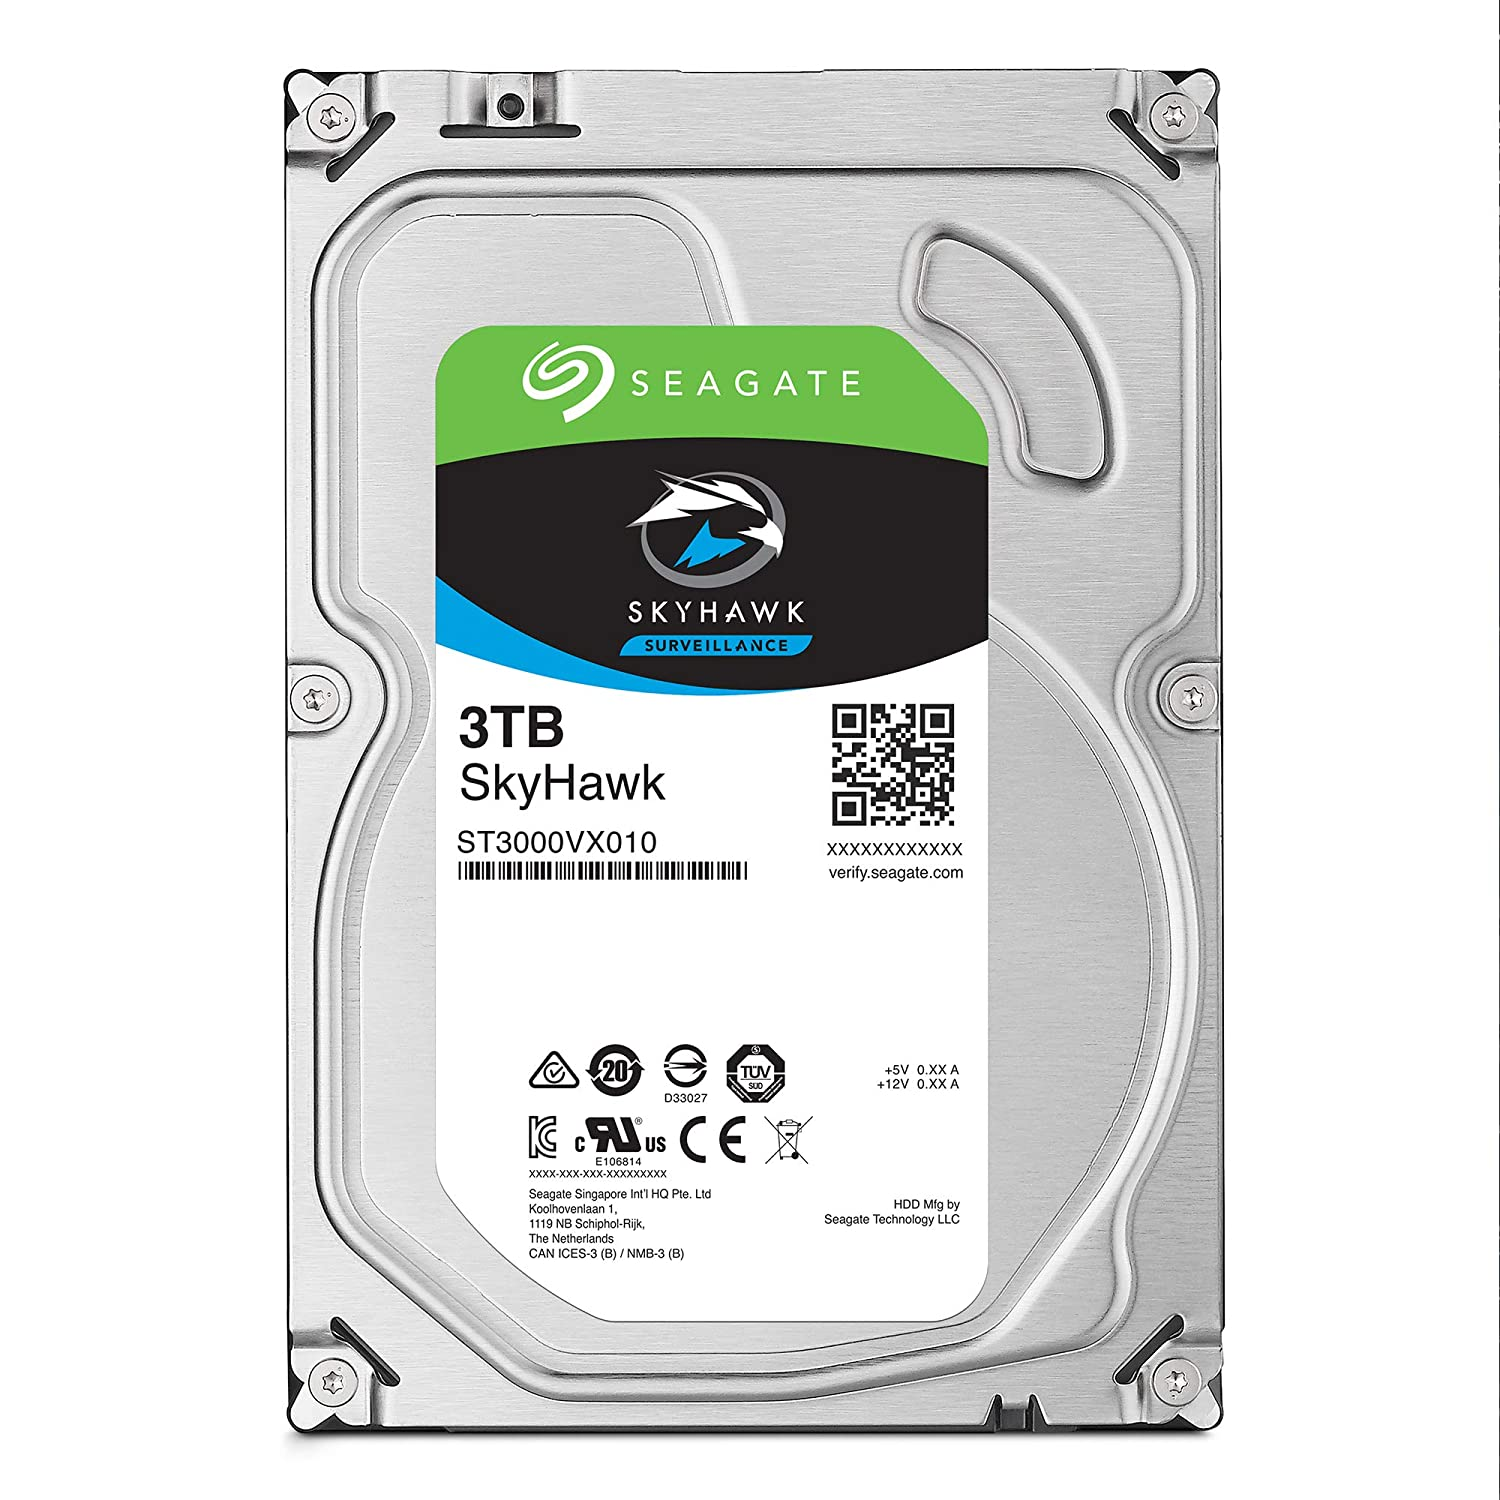 Seagate Skyhawk 3TB Surveillance Internal Hard Drive HDD – 3.5 Inch SATA 6Gb/s 64MB Cache for DVR NVR Security Camera System with Drive Health Management – Frustration Free Packaging (ST3000VX009)